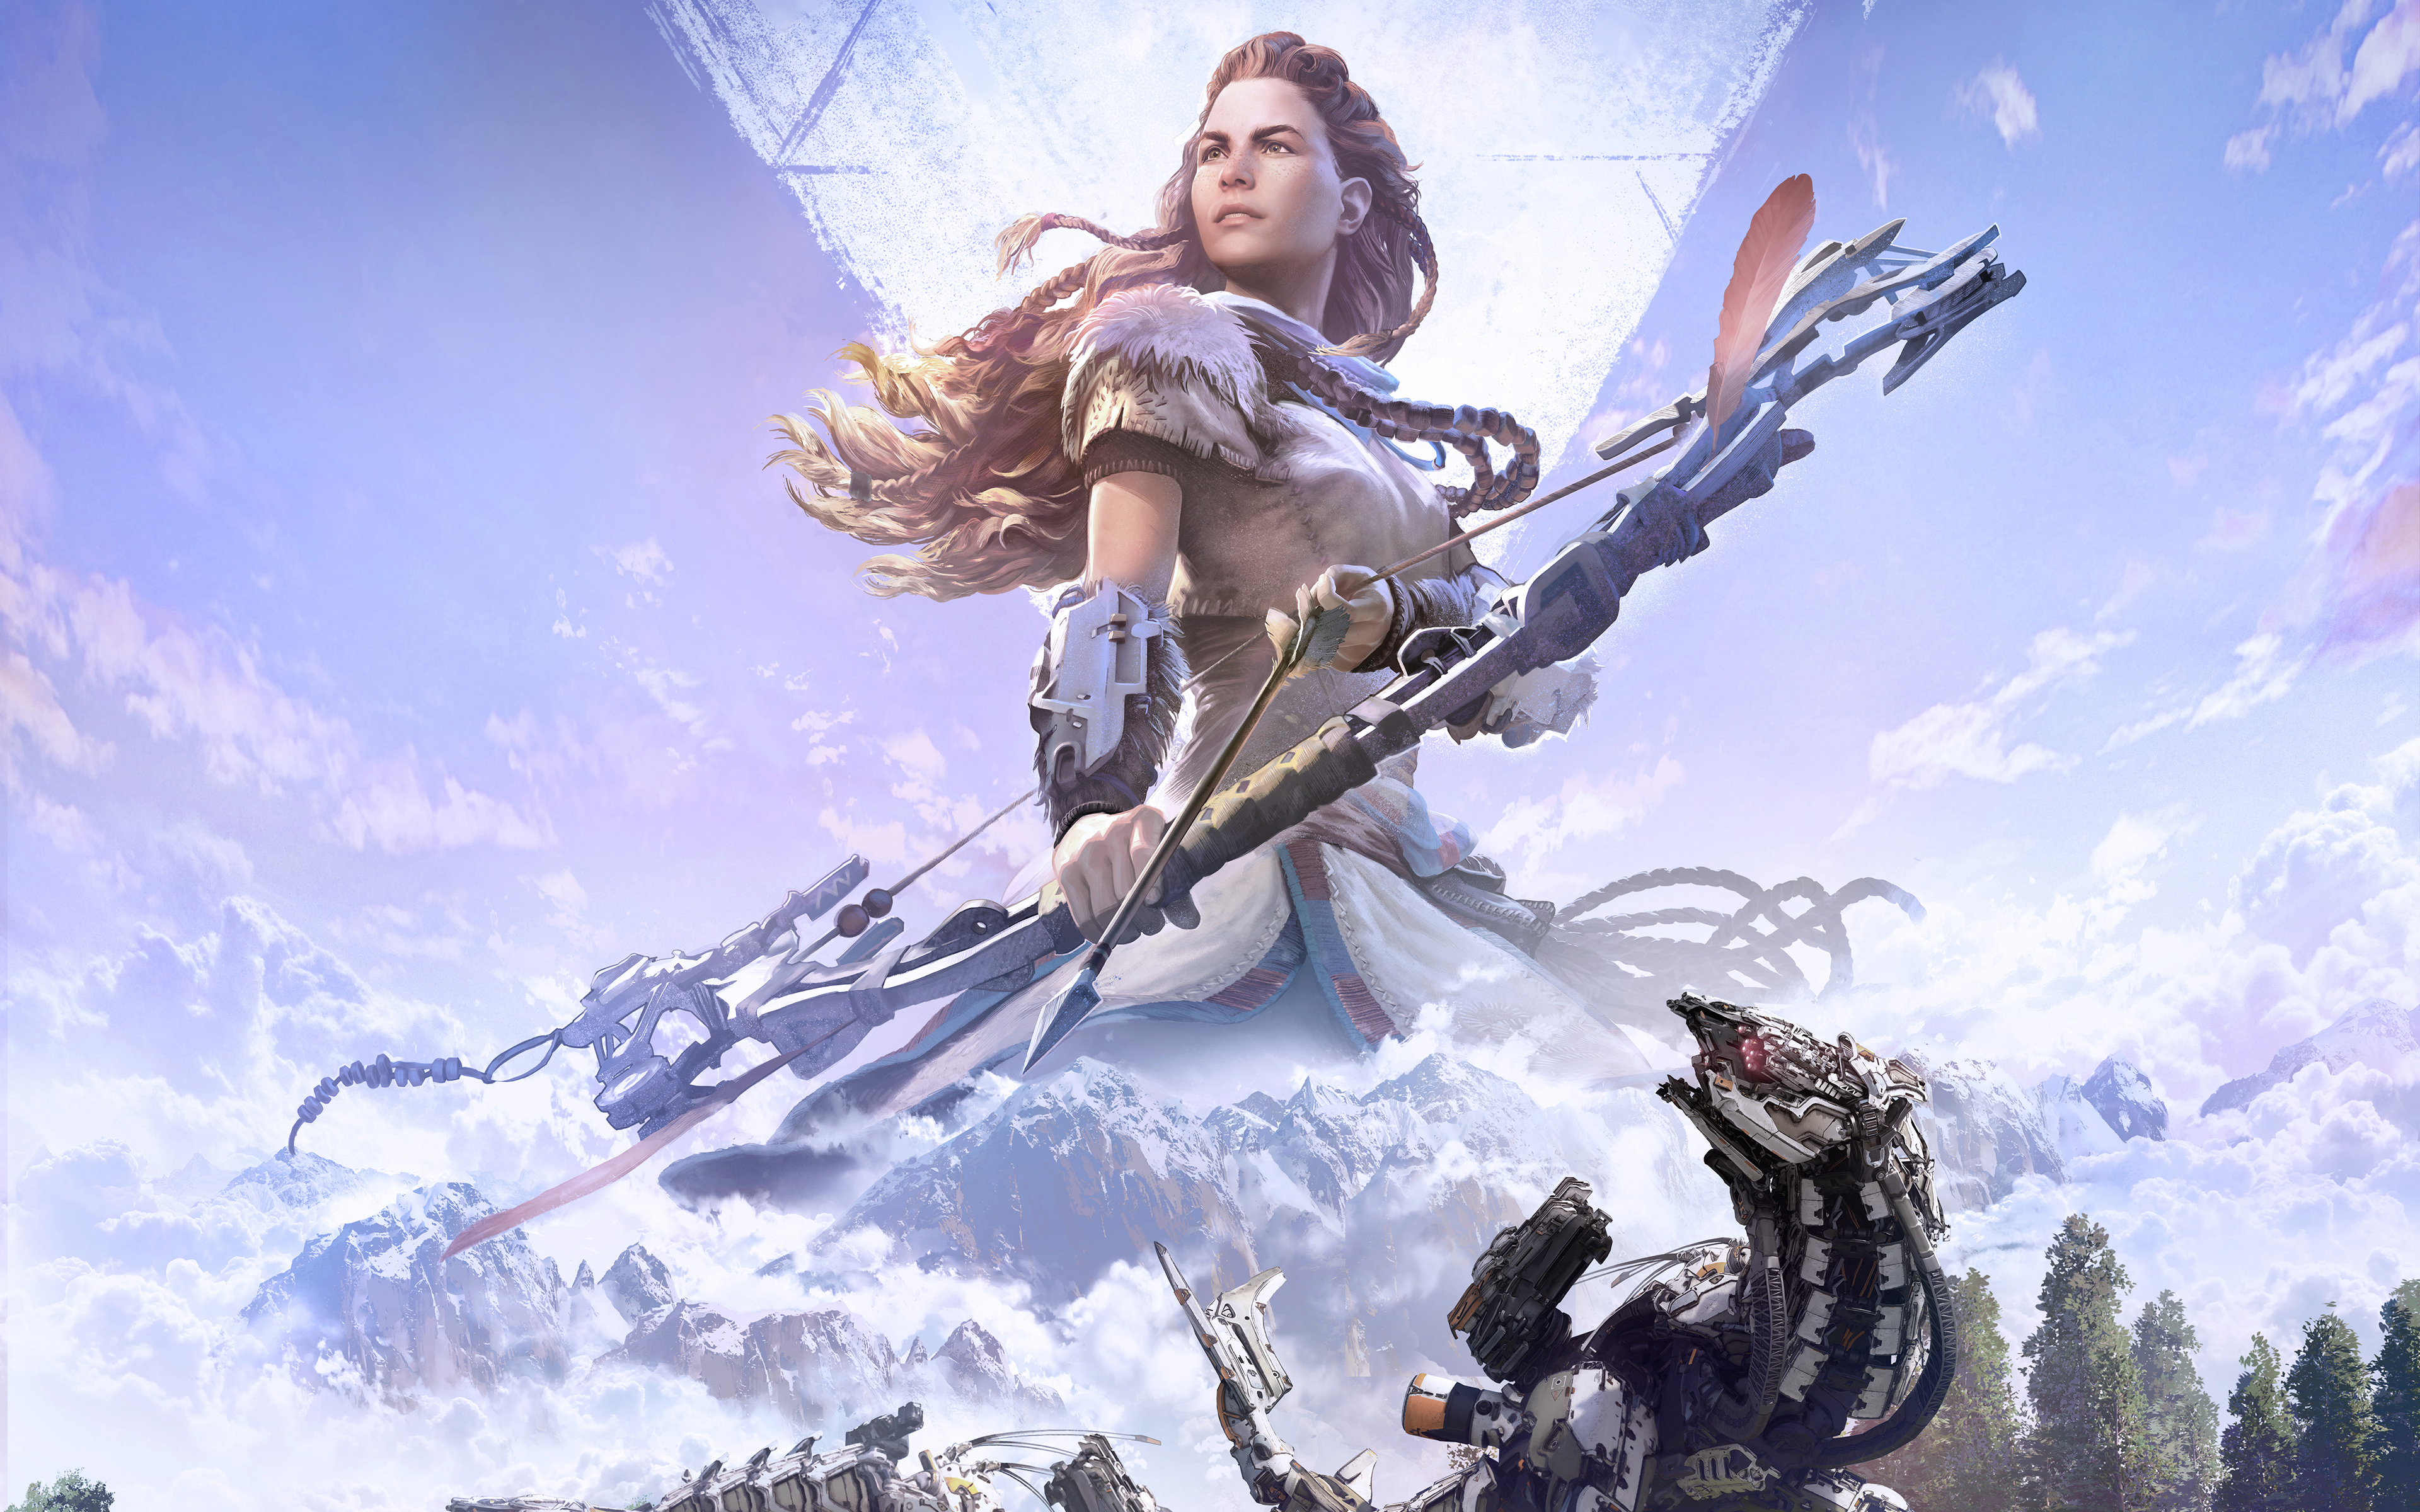 Horizon Zero Dawn Complete Edition 4K632347133 - Horizon Zero Dawn Complete Edition 4K - Zero, Horizon, Edition, Dawn, Complete, Boudica